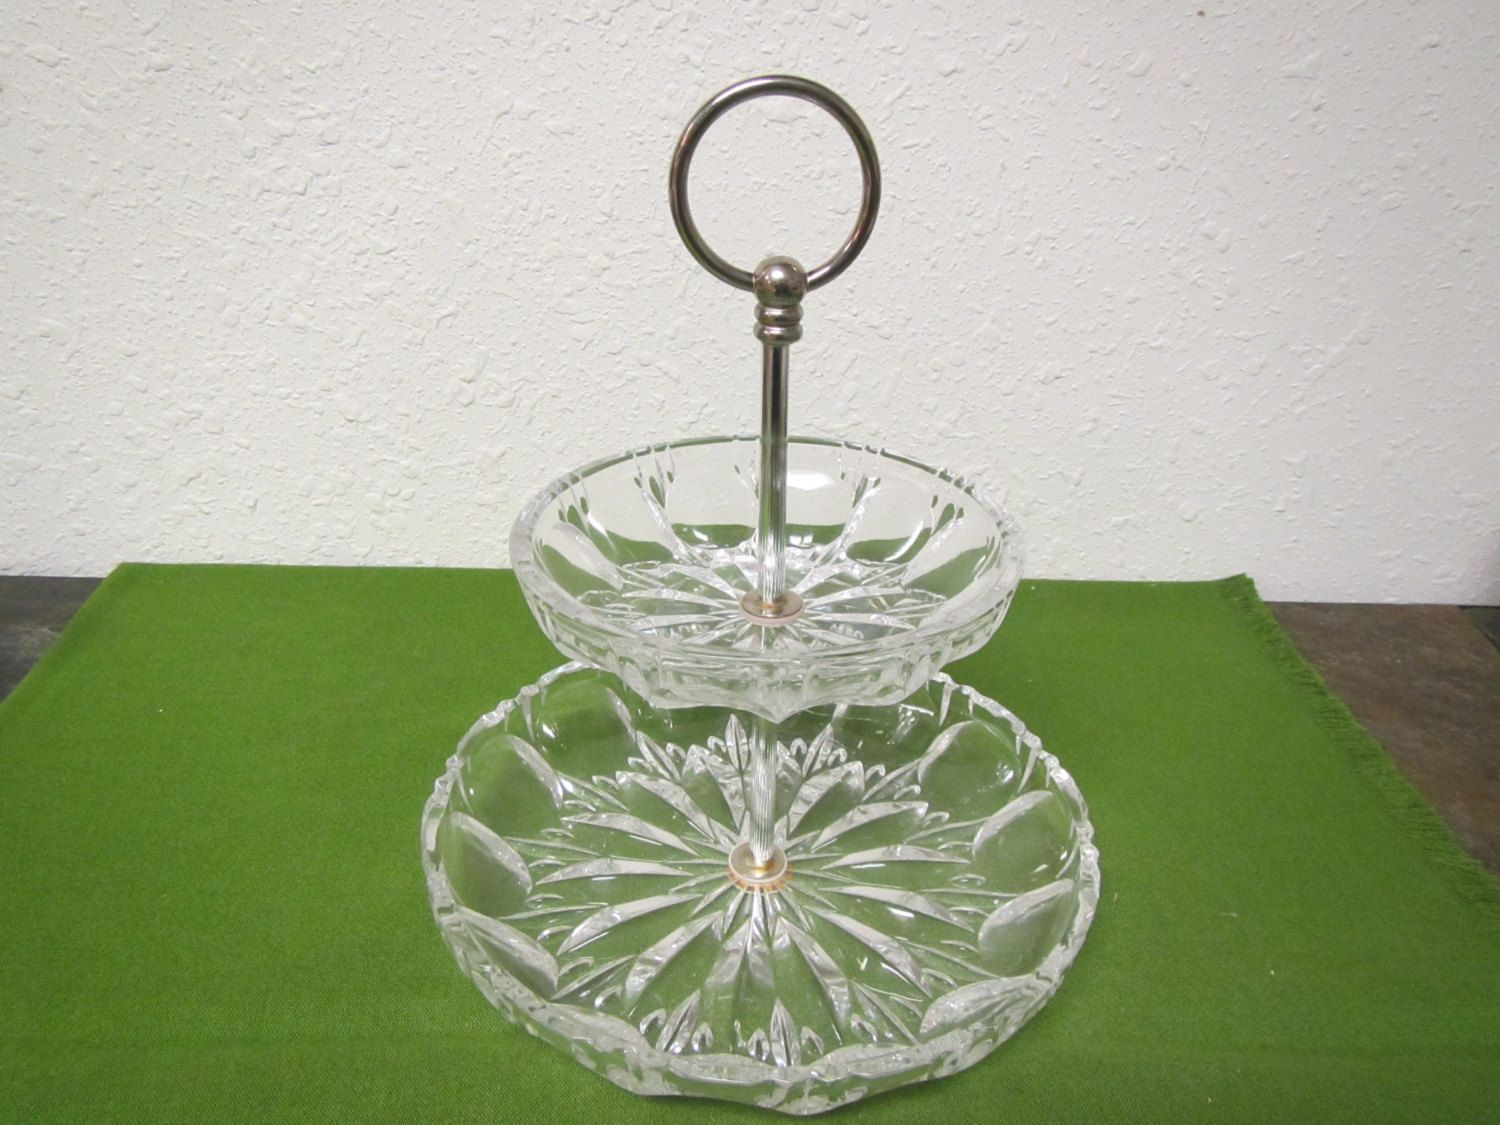 Vintage 2 Tier Glass Tidbit Serving Tray Or Candy Dish Relish Dish With Center Handle Candy Dishes Relish Dish Glass Dishes